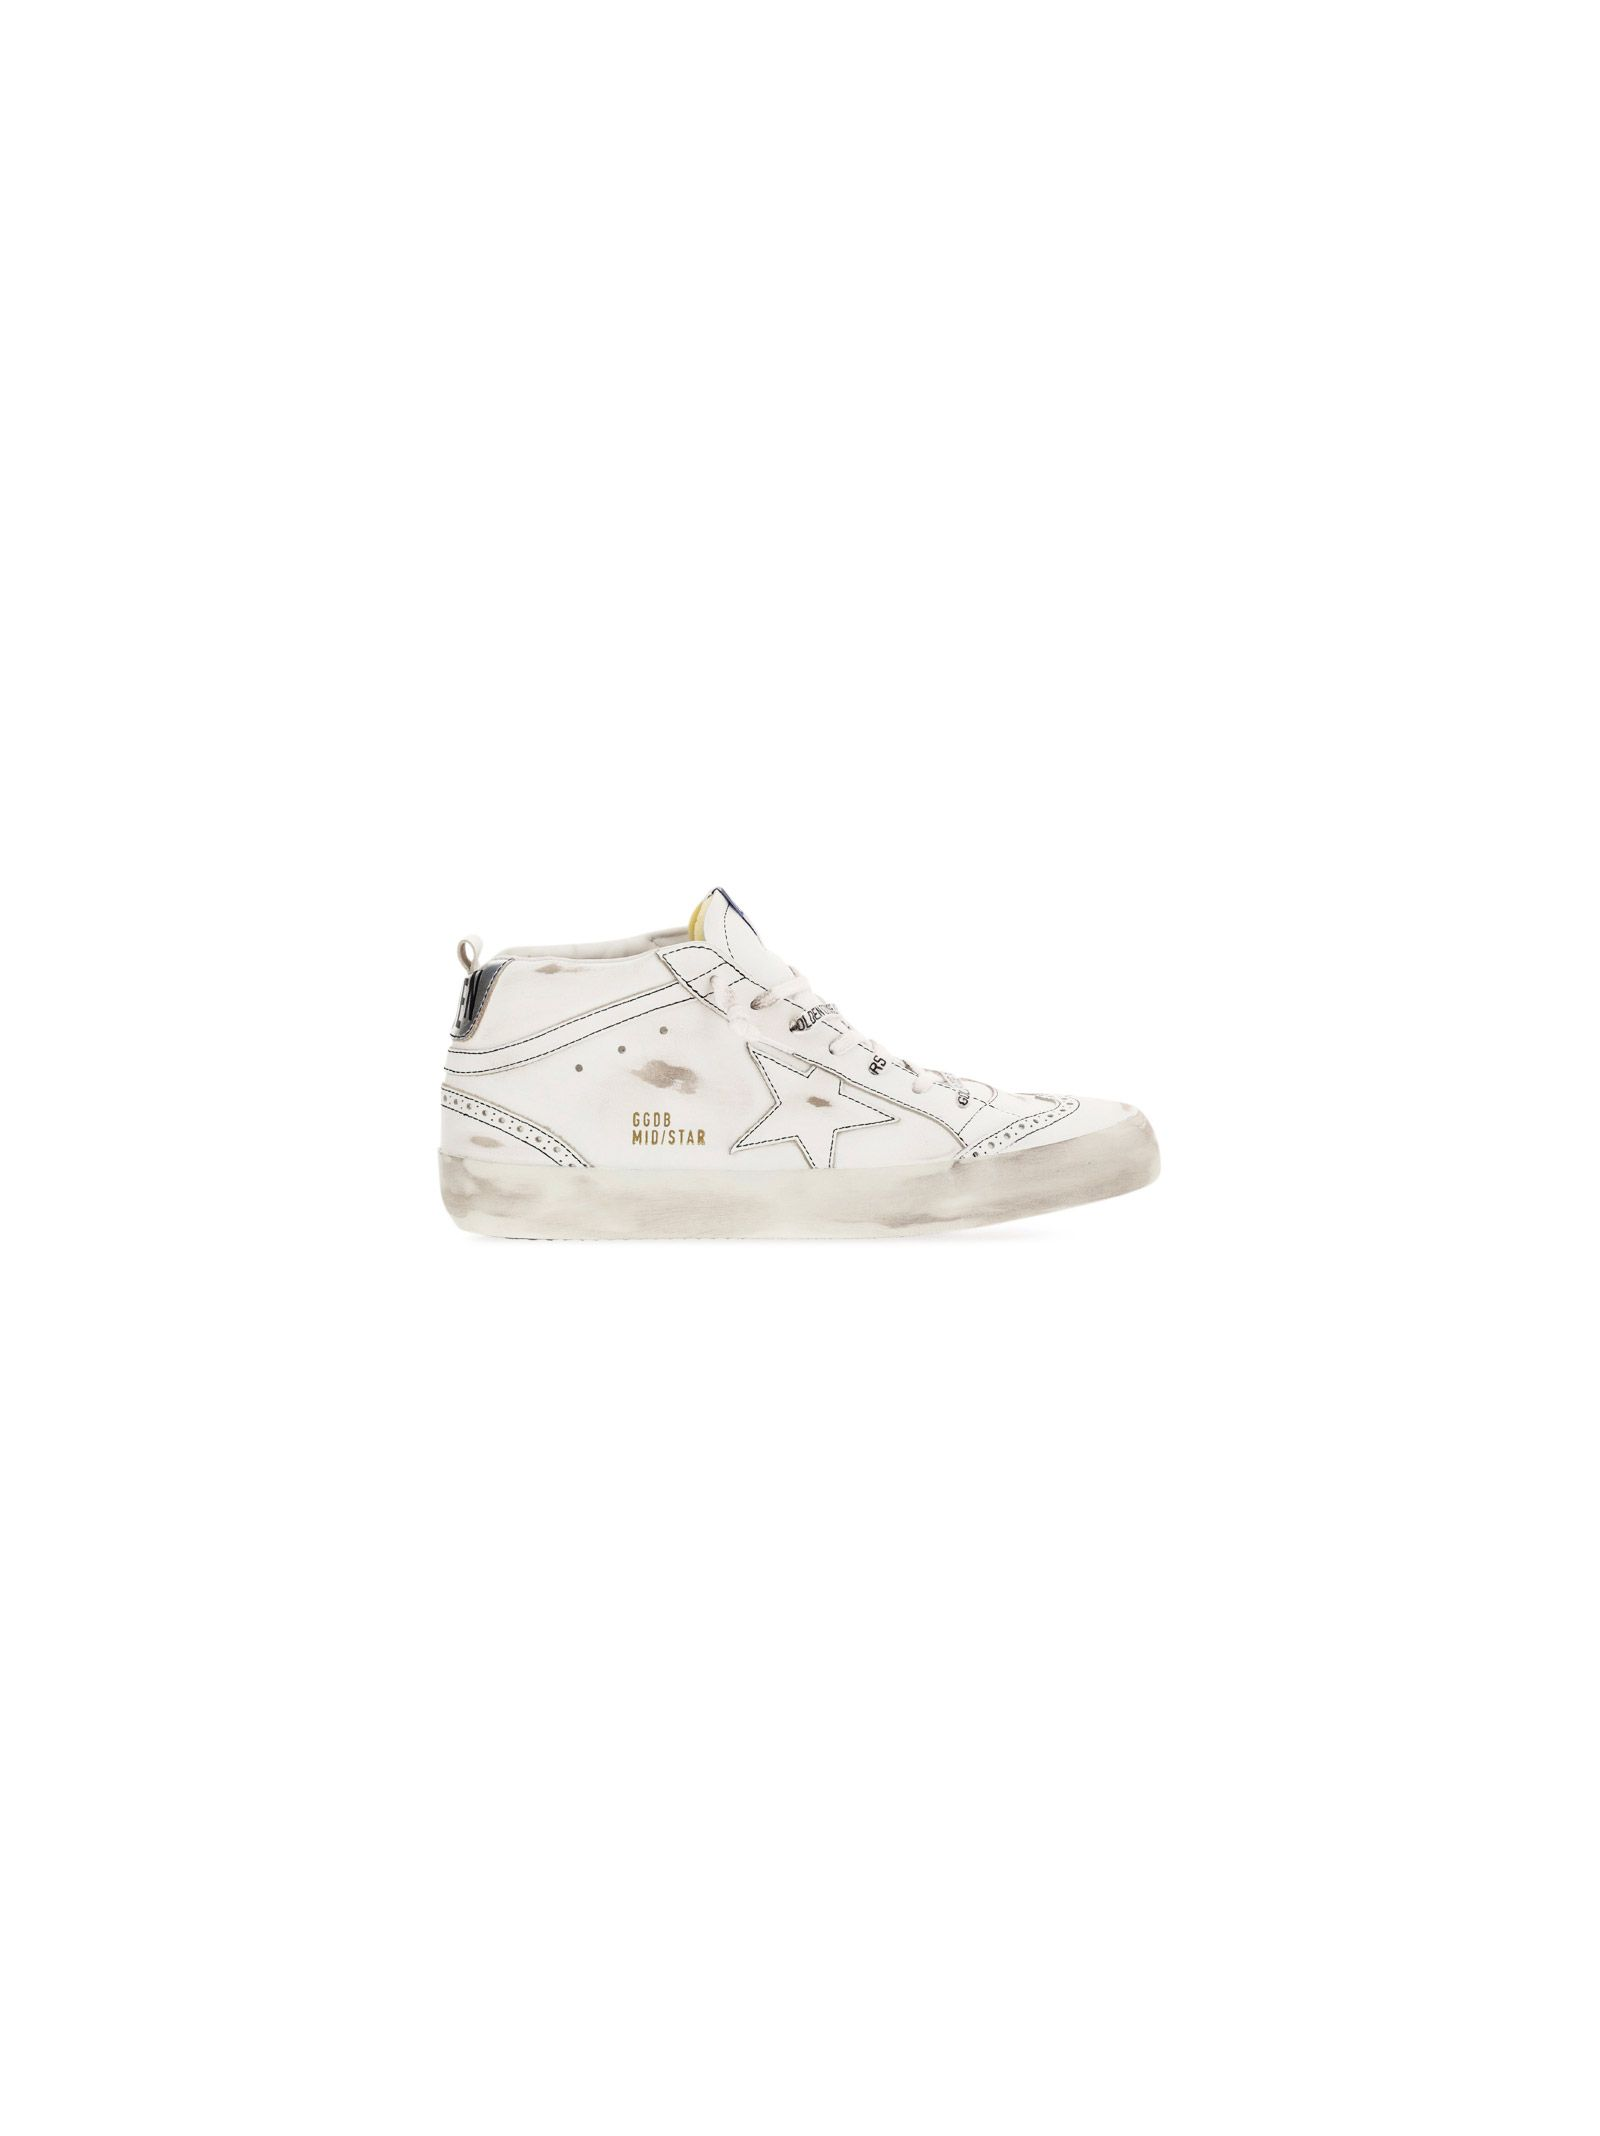 Golden Goose GOLDEN GOOSE MEN'S WHITE OTHER MATERIALS SNEAKERS